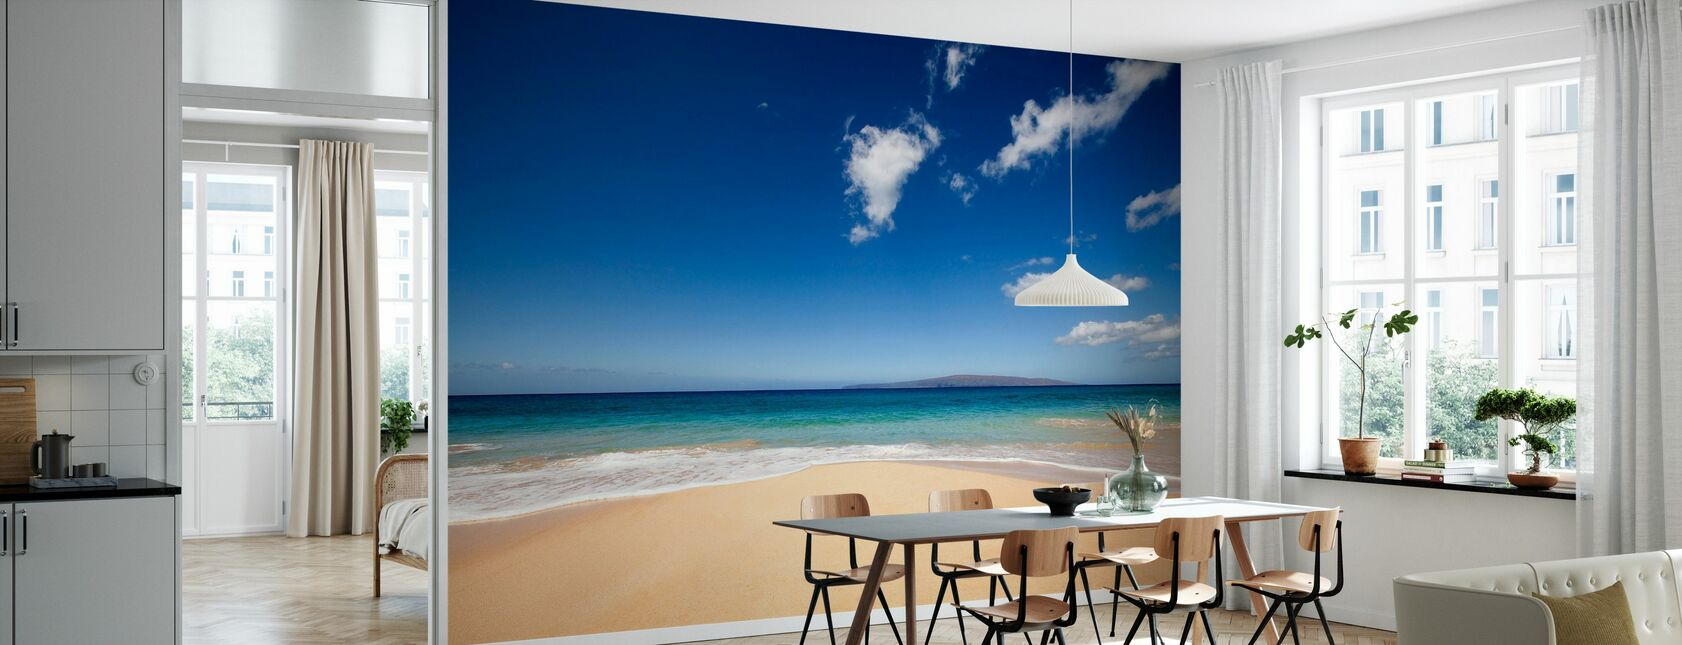 Blue Noon at the Beach - Wallpaper - Kitchen